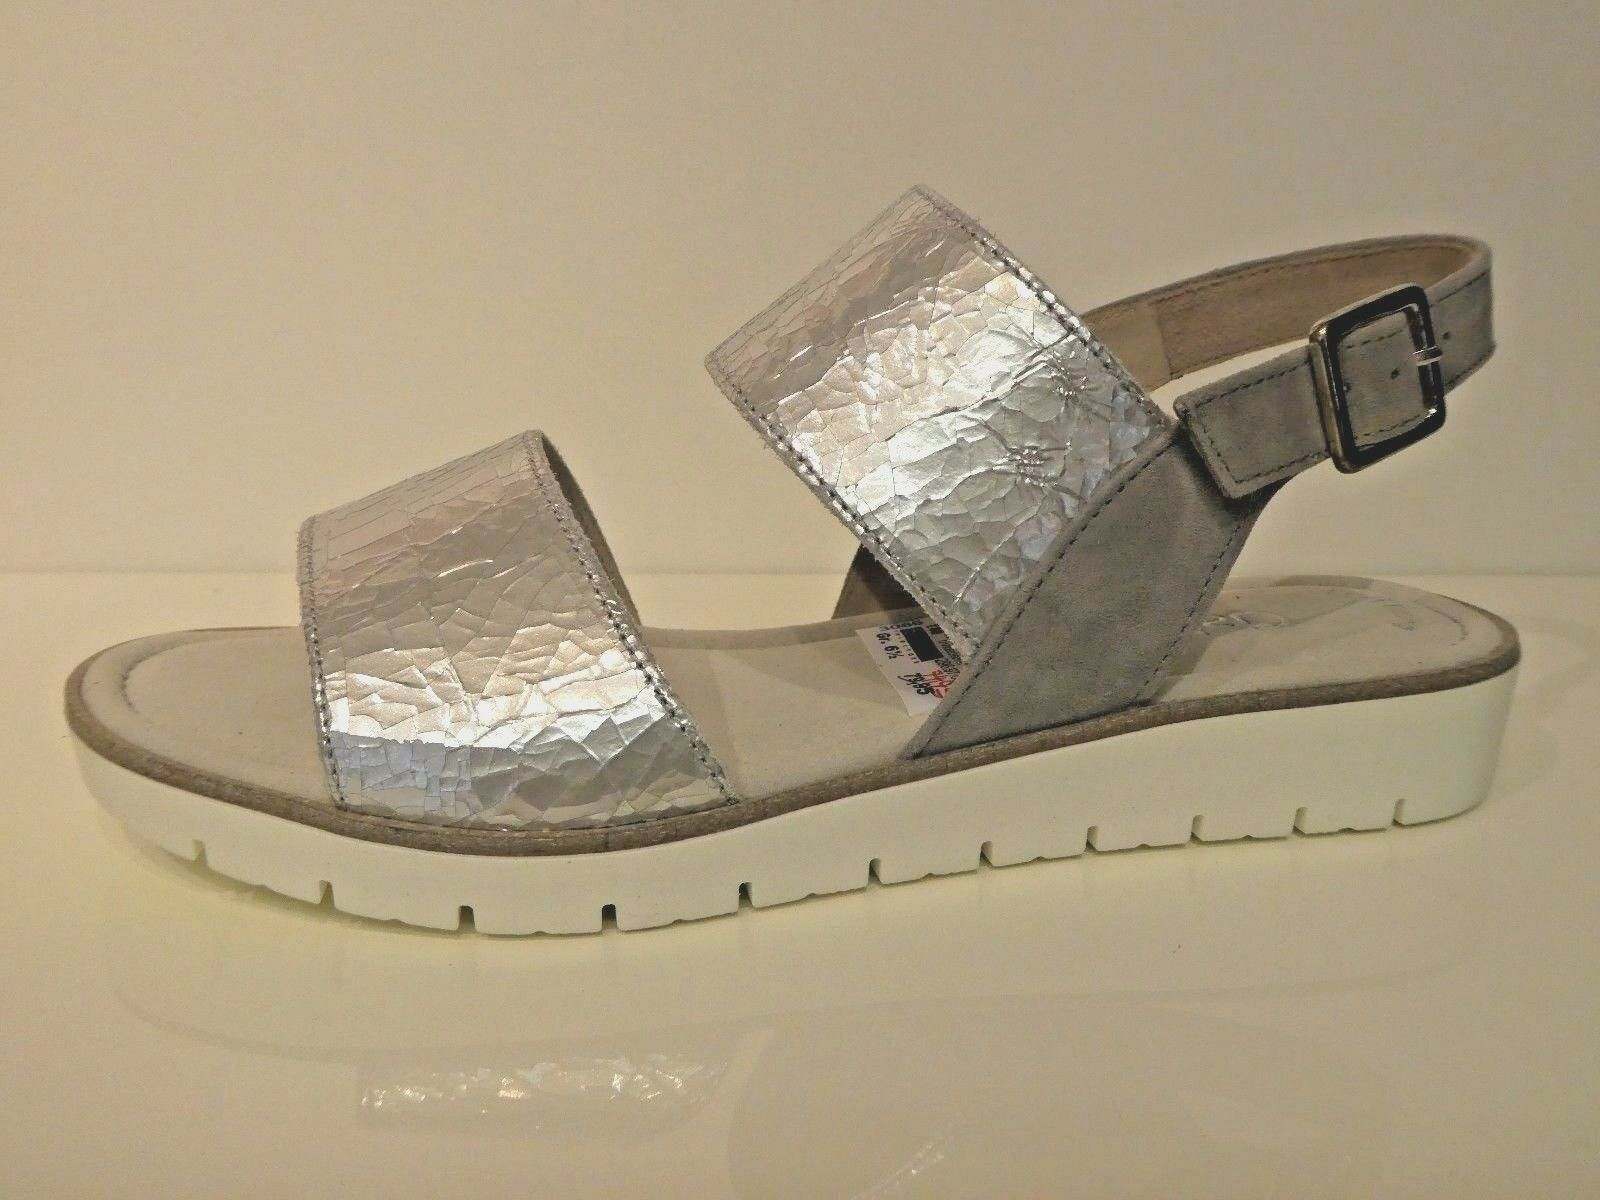 Gabor Schuhe Sandaletten Sandalen grau stone metallic Crash Leder Best Fitting